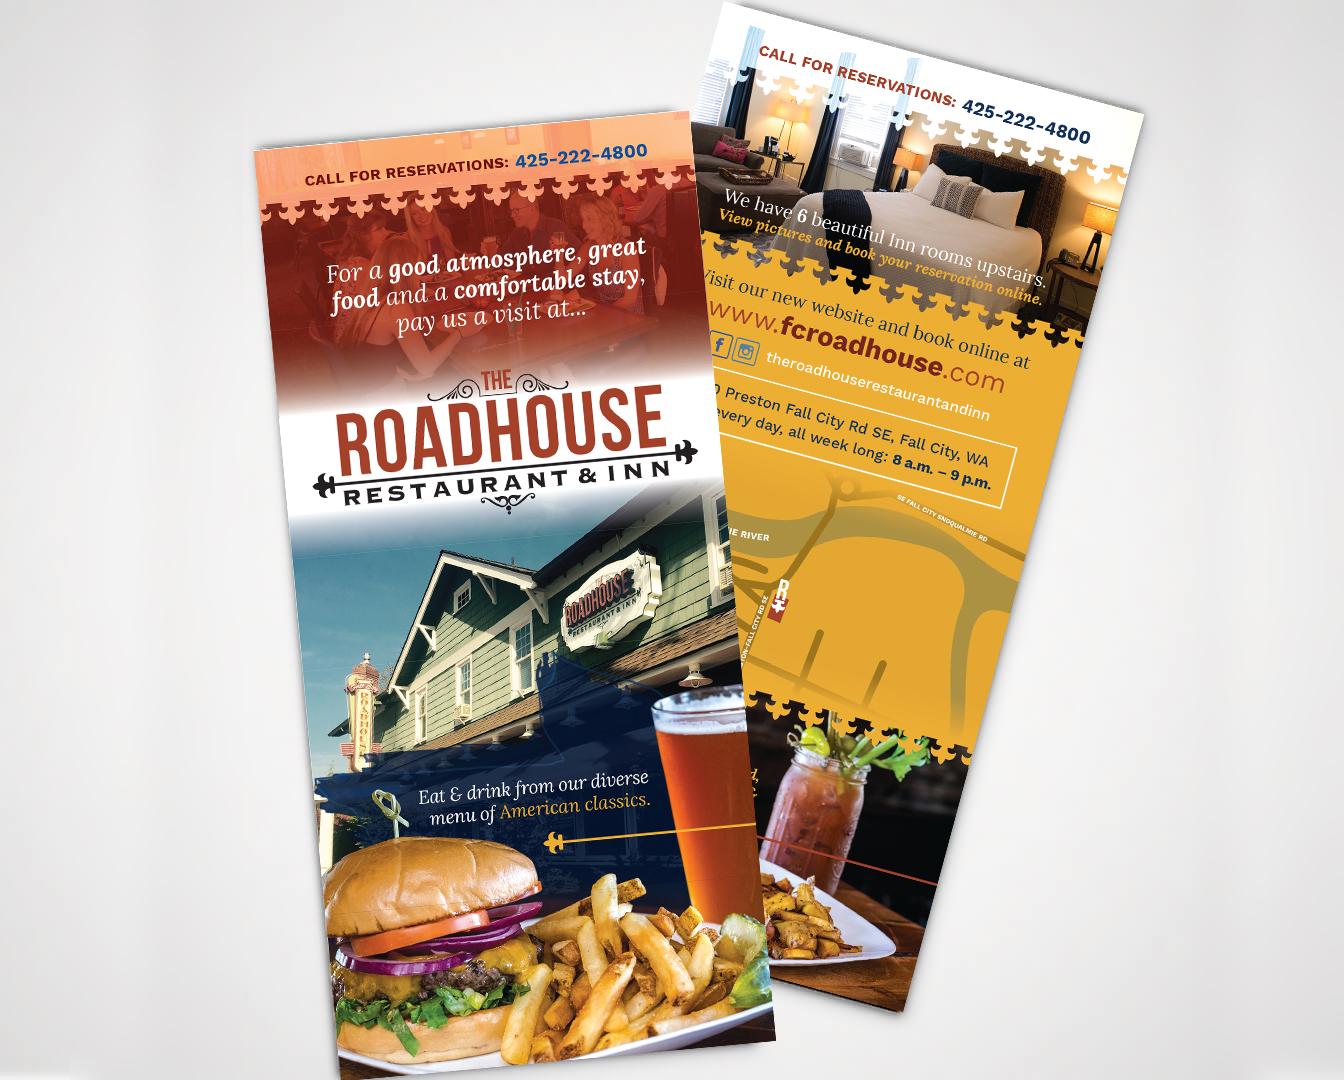 The Roadhouse Restaurant and Inn flyers designed by Fingerprint Marketing